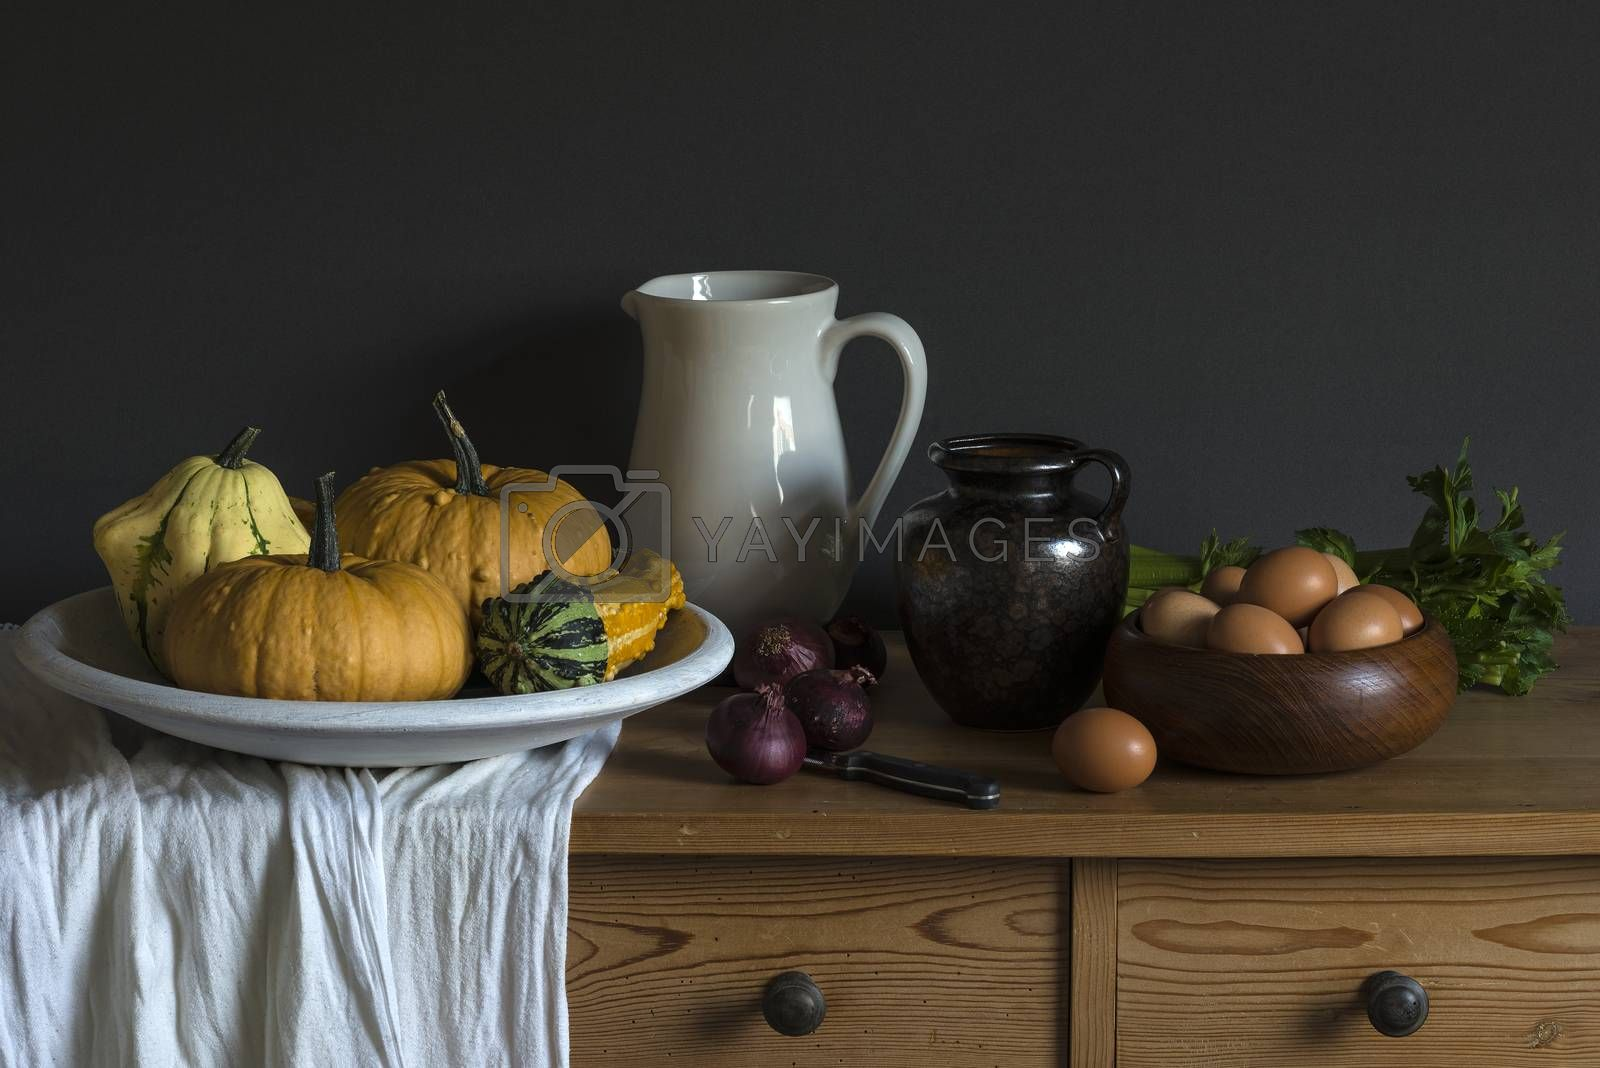 Still life based on a painting by an old master painter  by Tofotografie